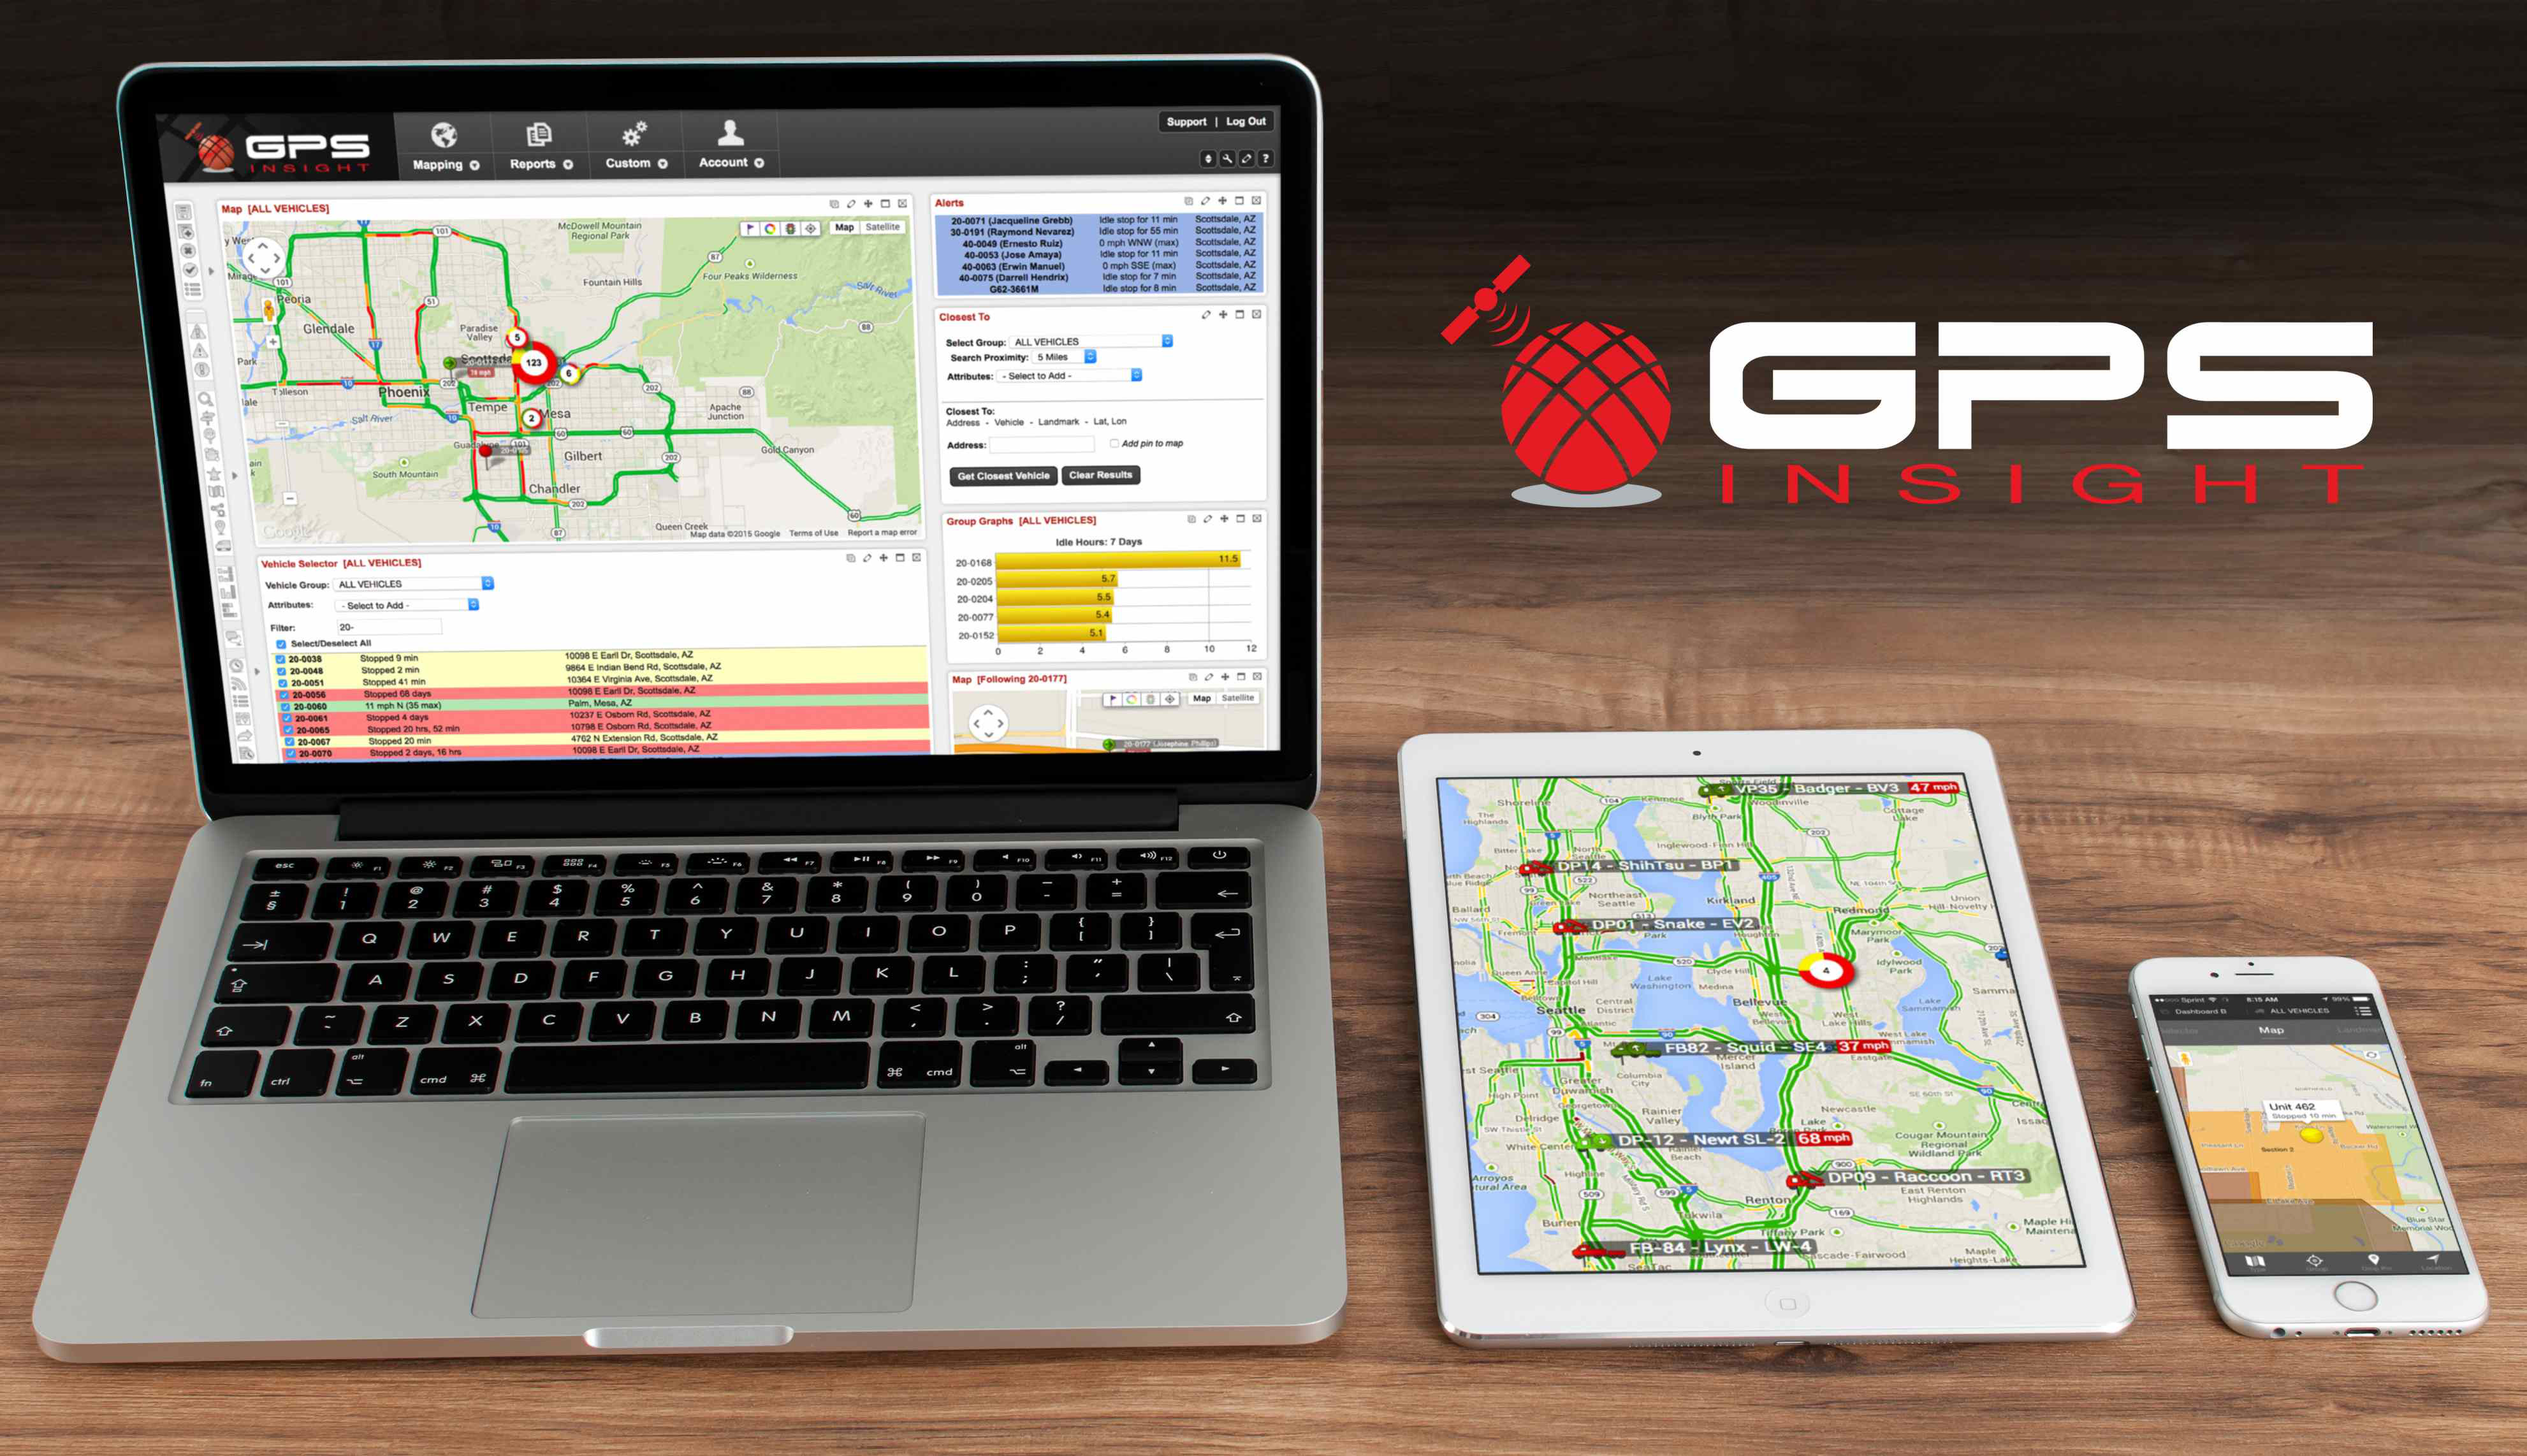 GPS Insight integrates tracking, DTC alerts with Fleetio